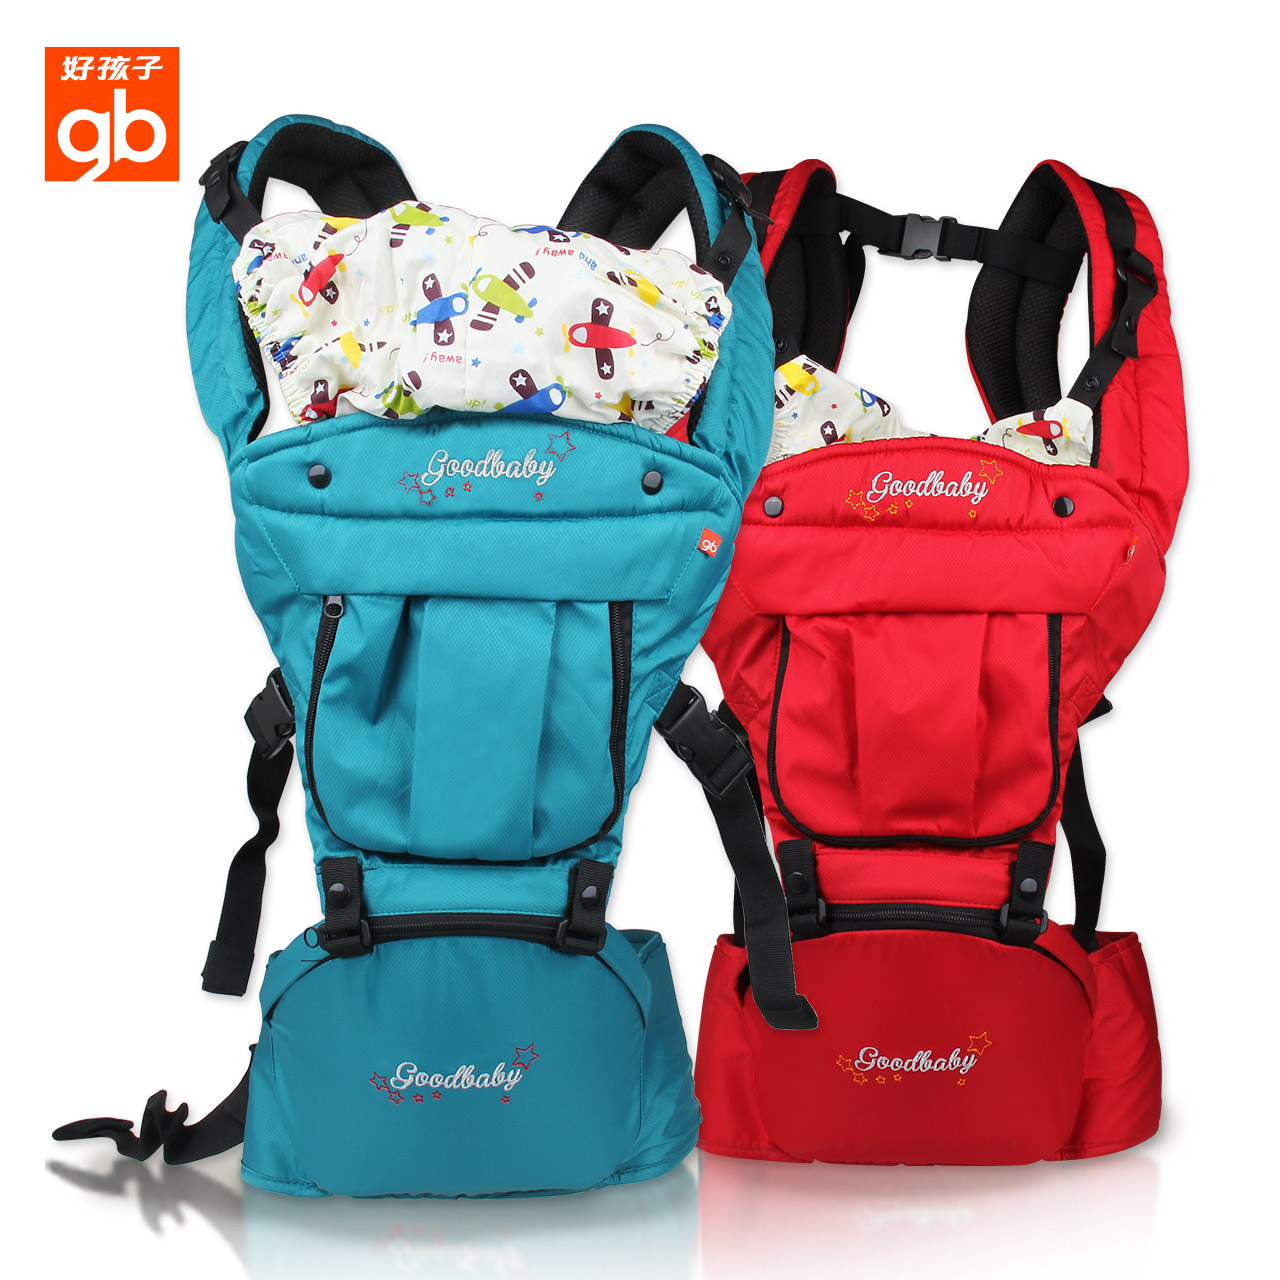 Boy baby sling versatile baby carrier baby sling baby stool waist hold style backpack with breathable four seasons ago